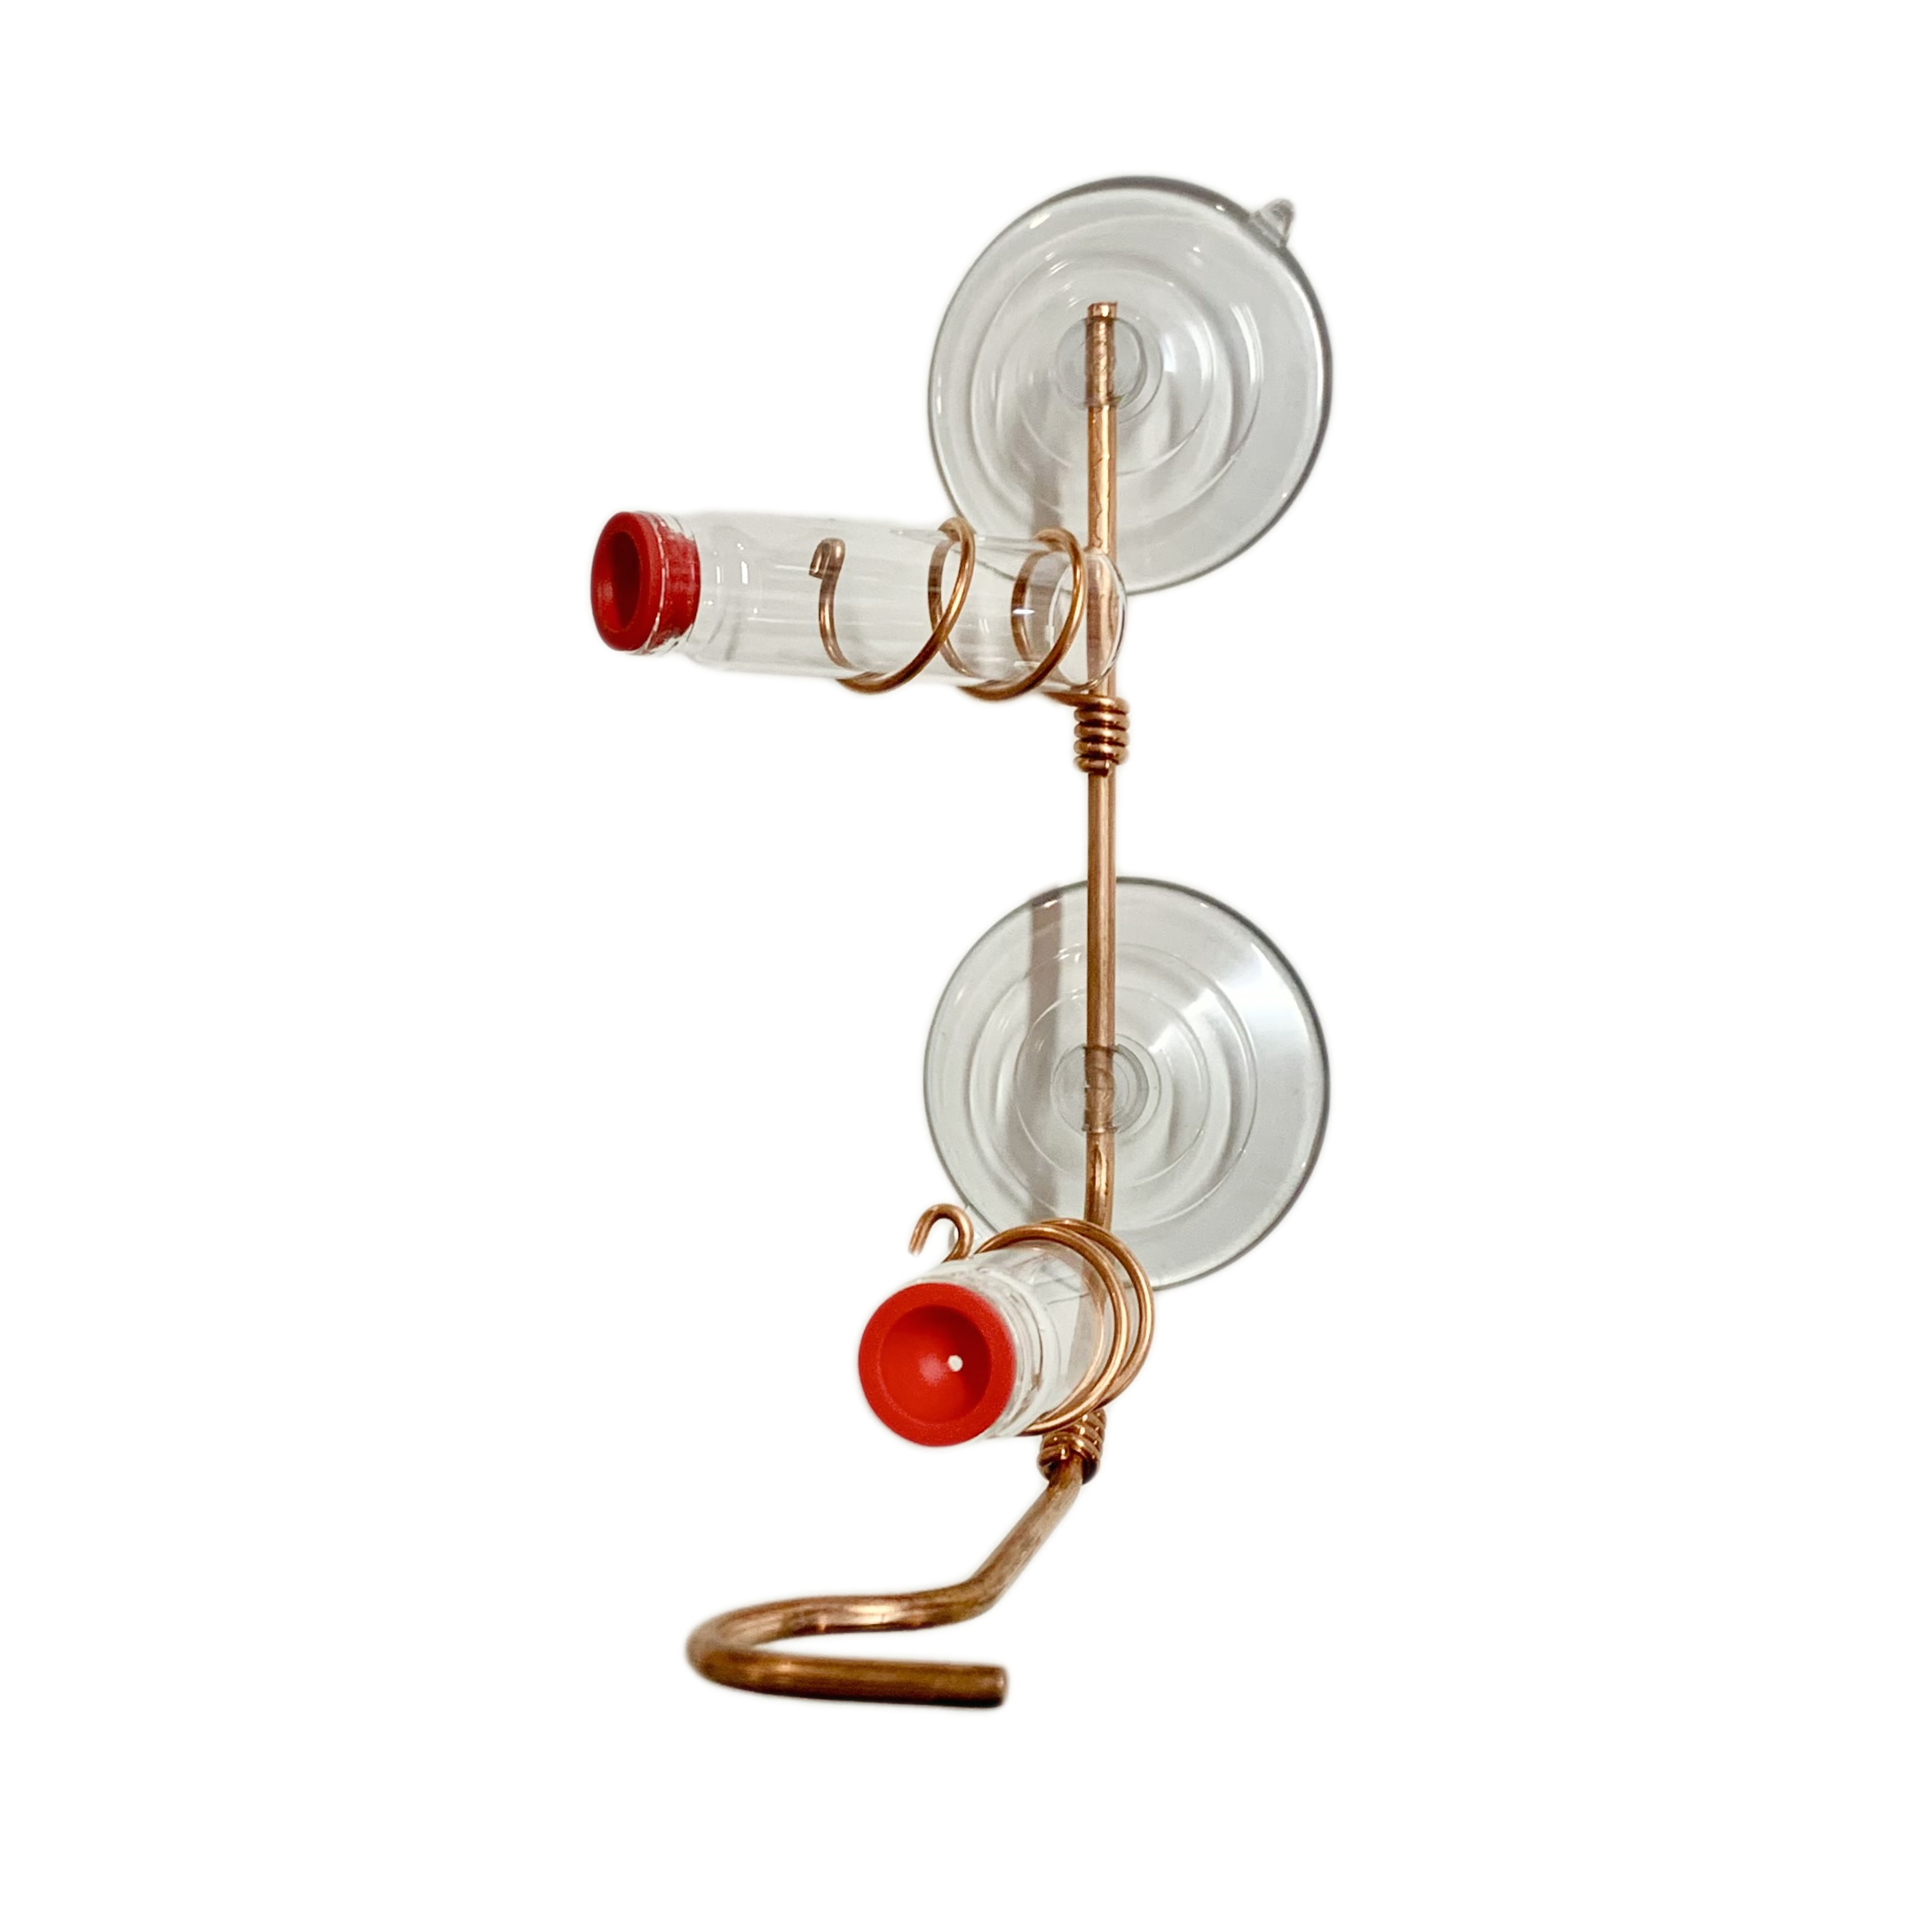 A simple window hummingbird feeder made from copper wire and two glass vials stands out on a white background